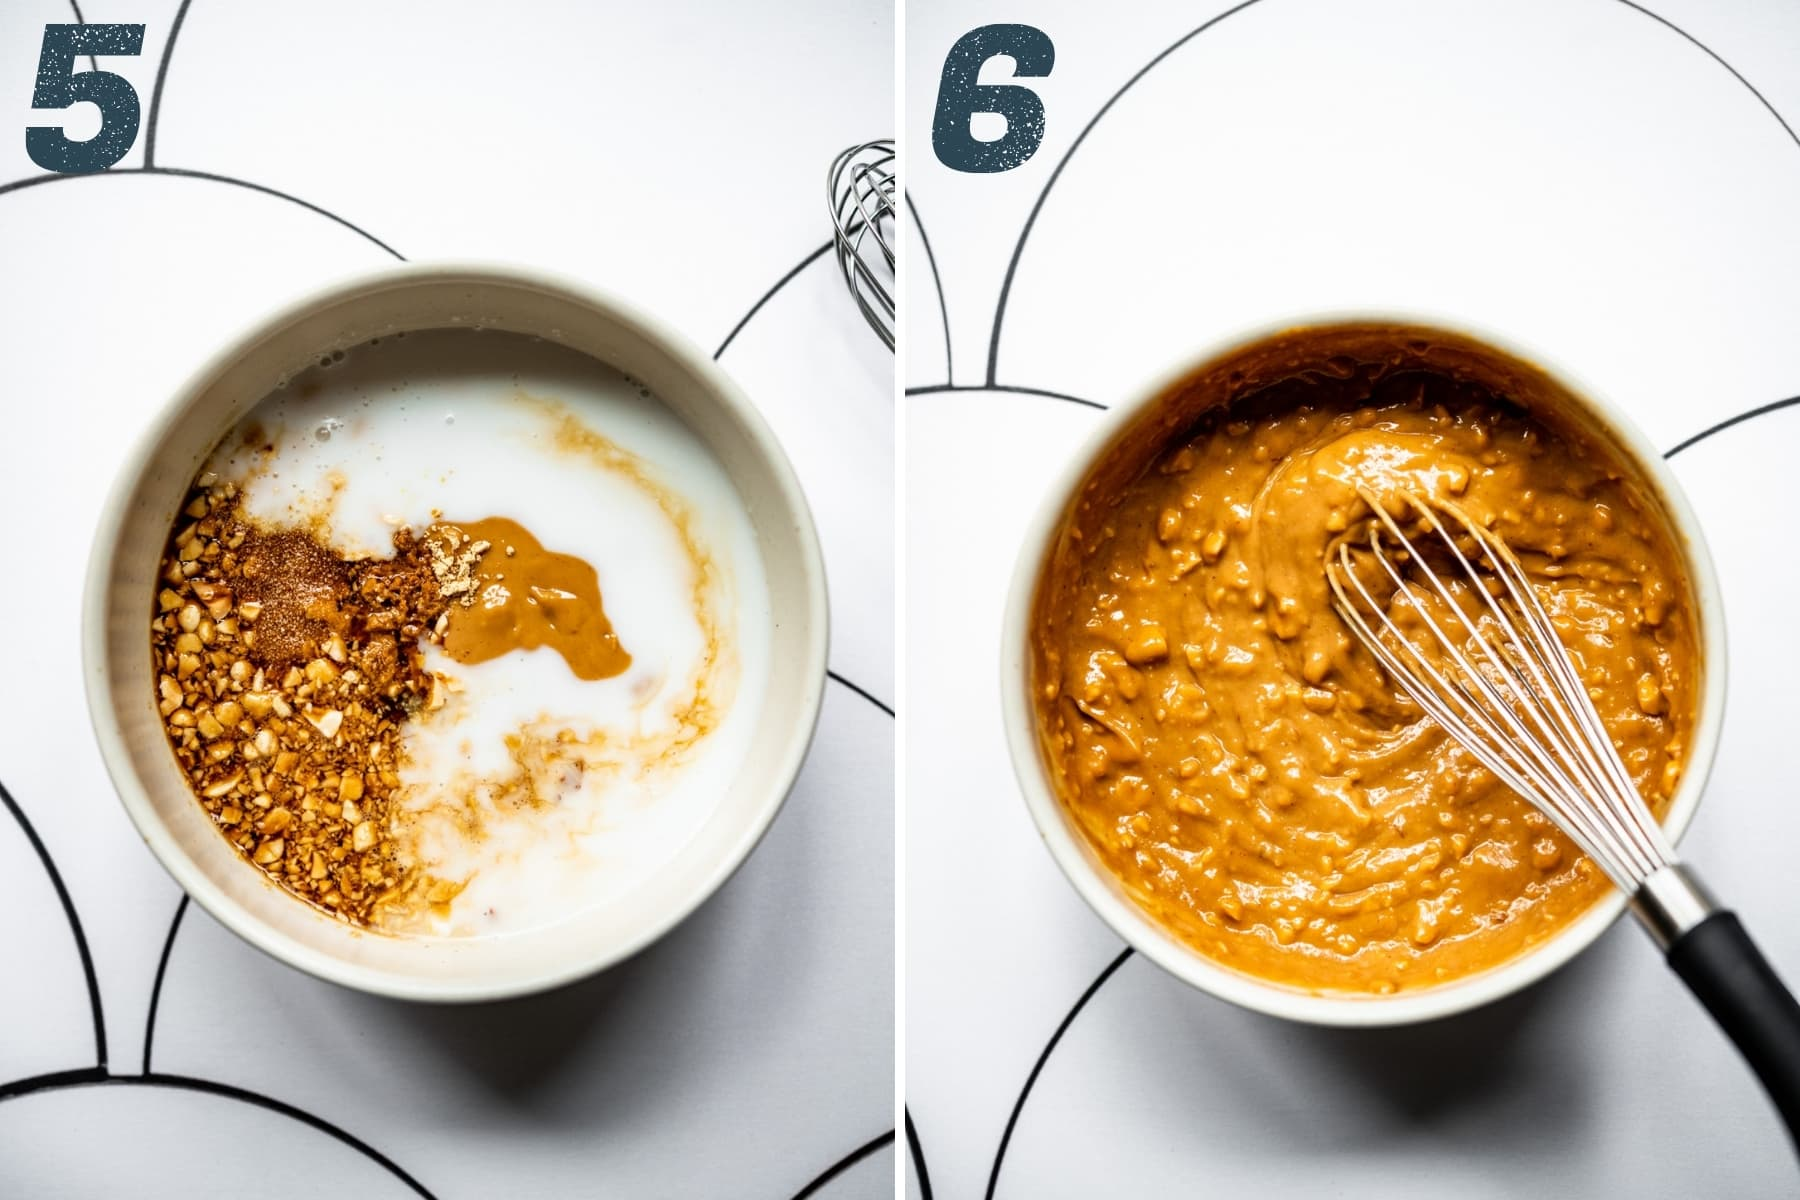 before and after whisking together ingredients for peanut sauce.